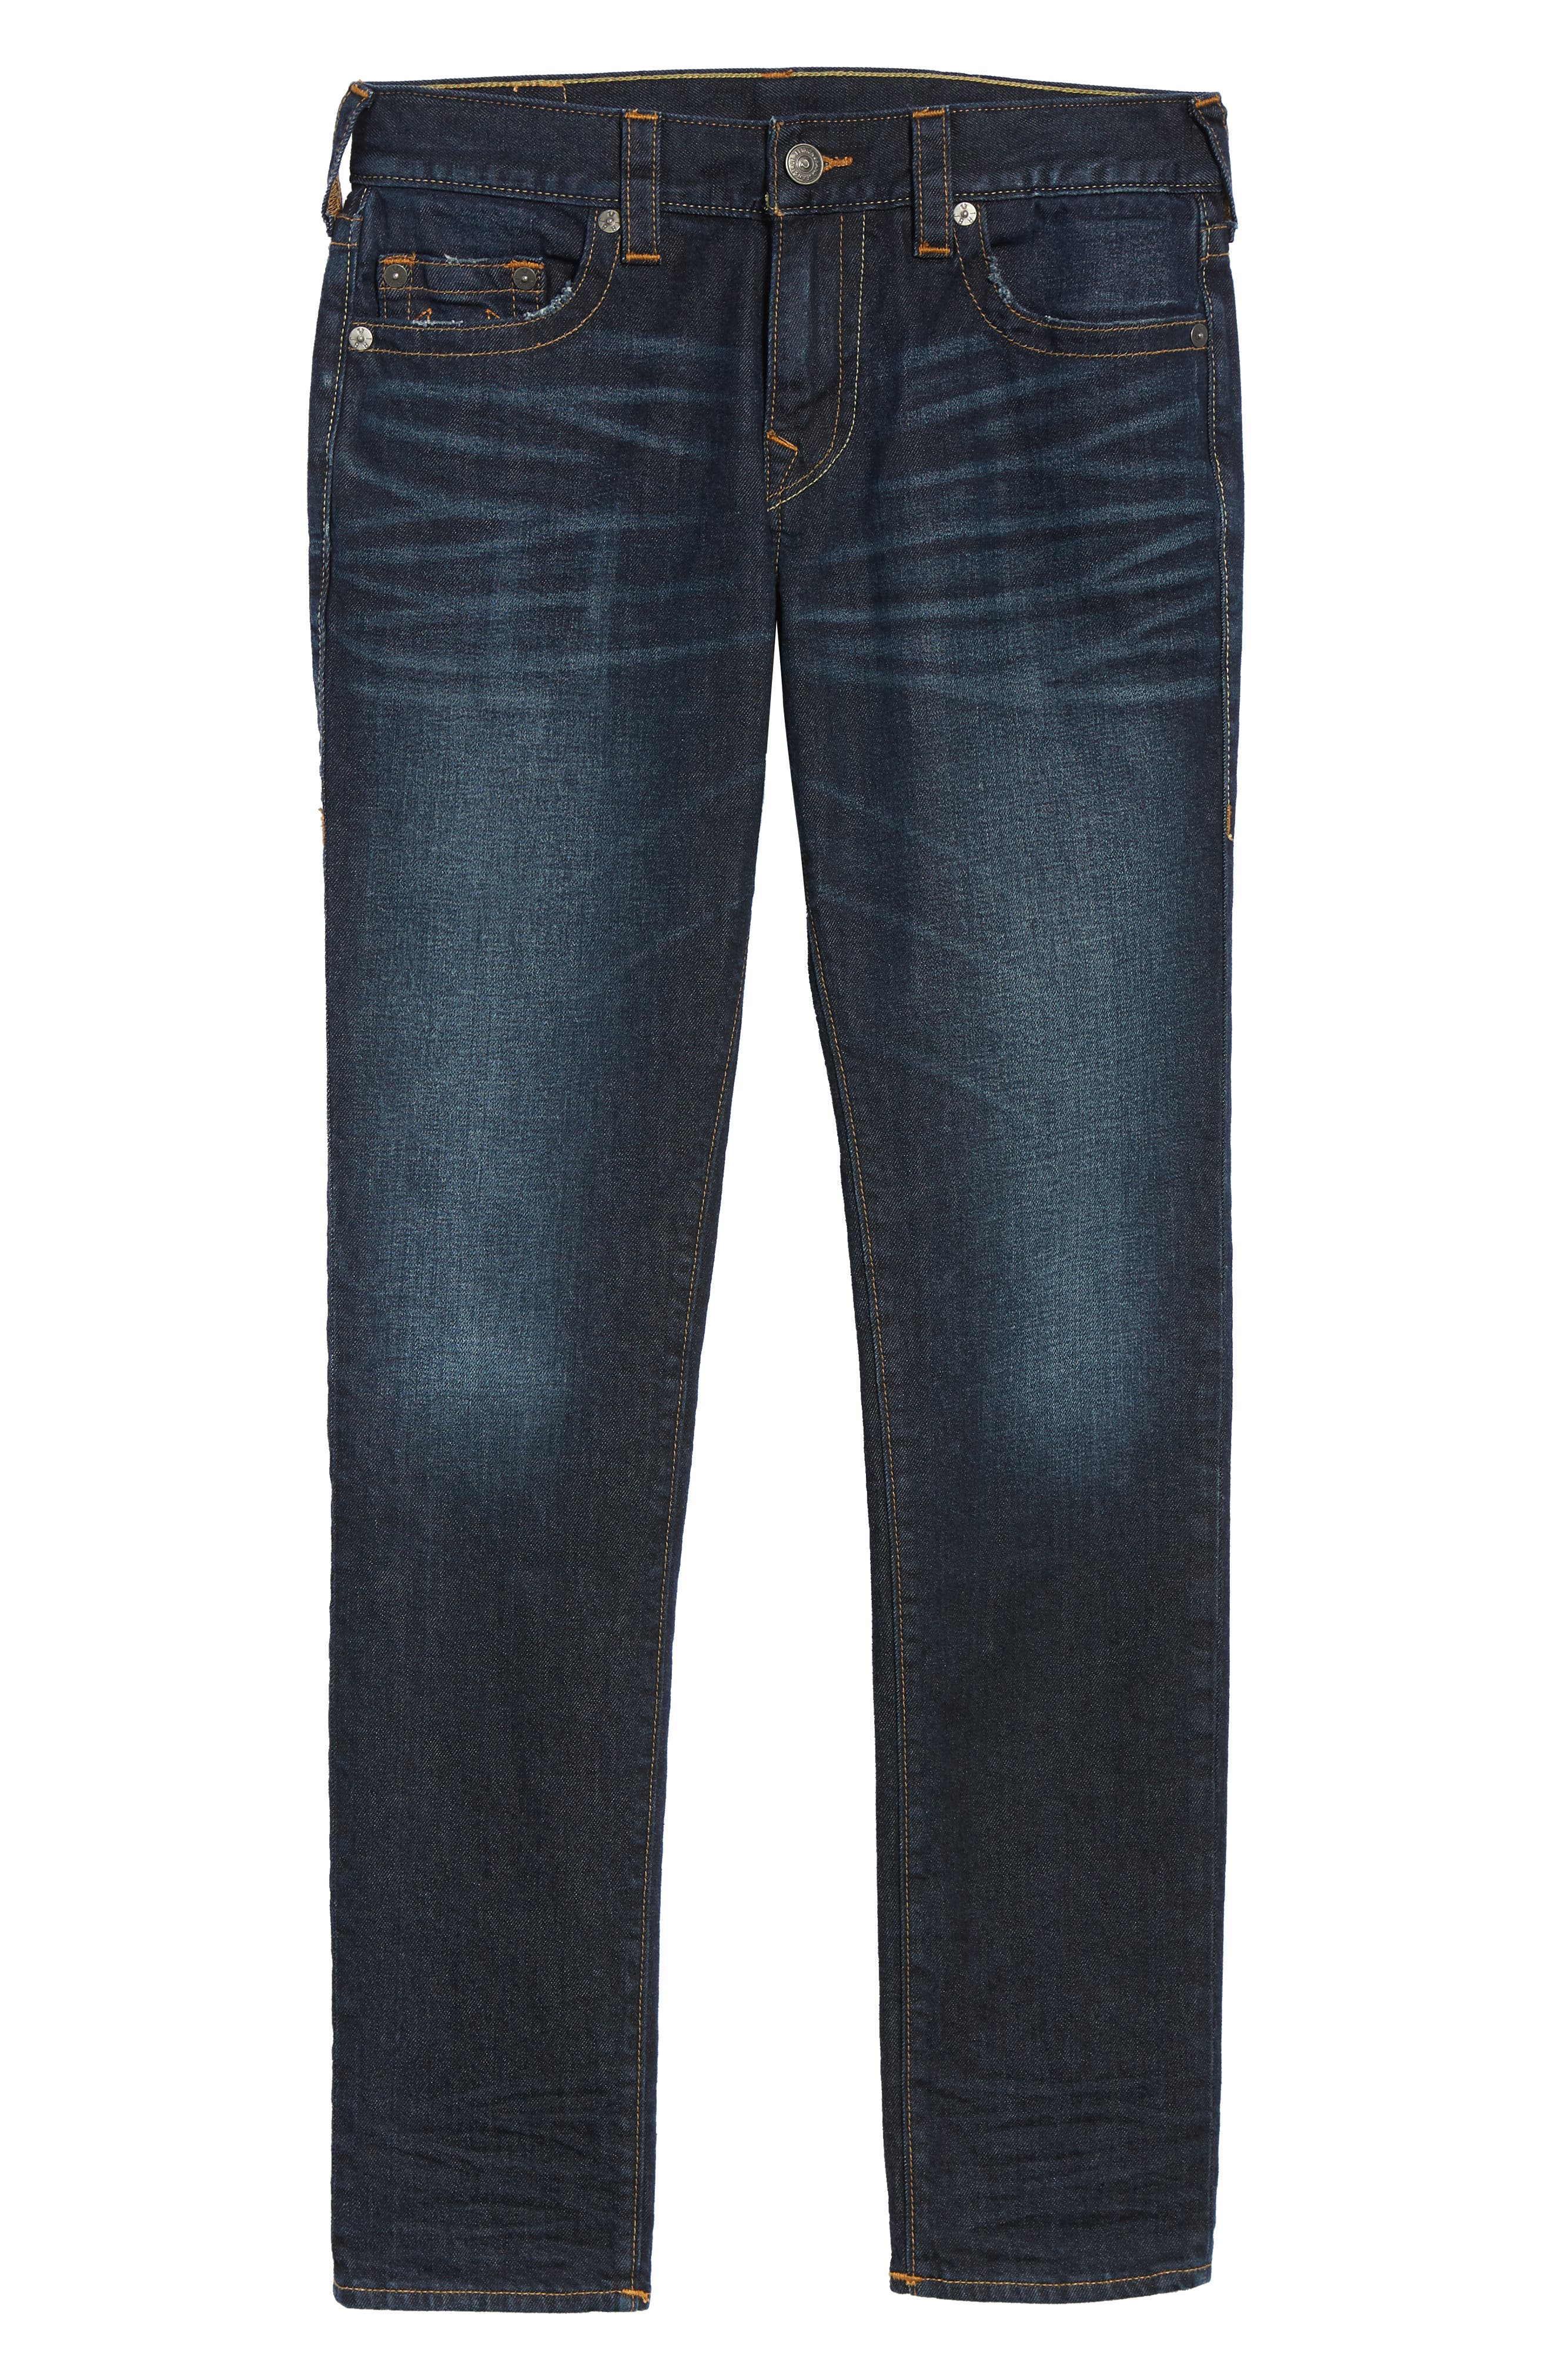 Rocco Skinny Fit Jeans,                             Alternate thumbnail 6, color,                             DARK TUNNEL